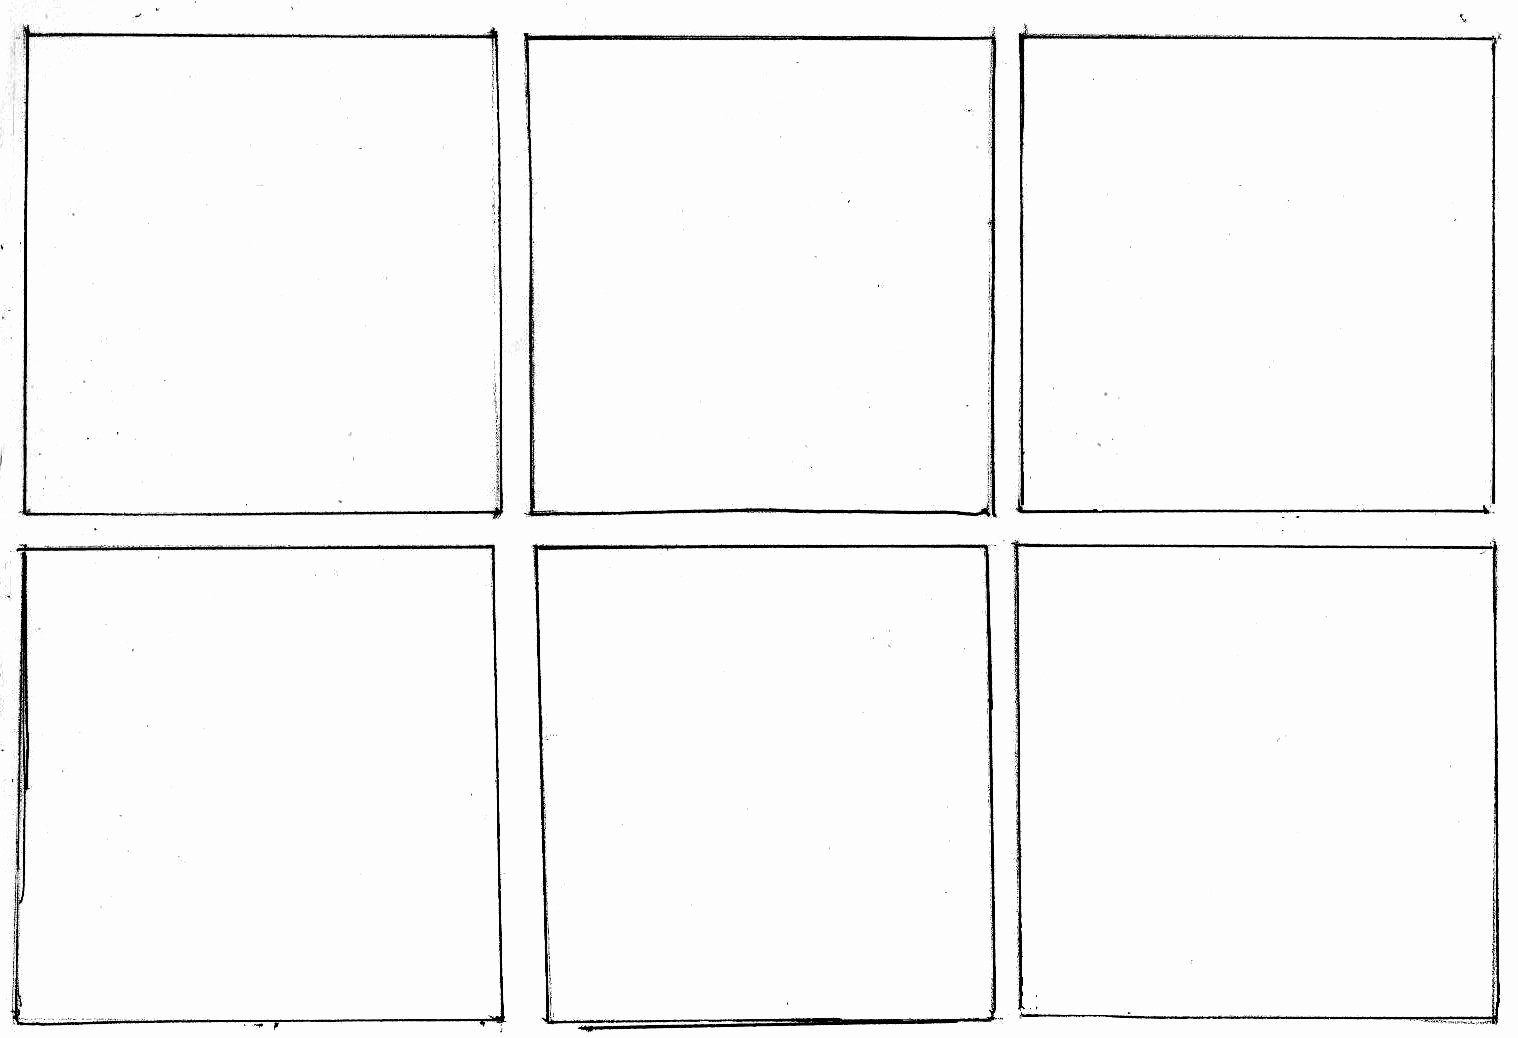 Comic Strip Template Word Beautiful What Panel Layout Should I Use In My Web Ic